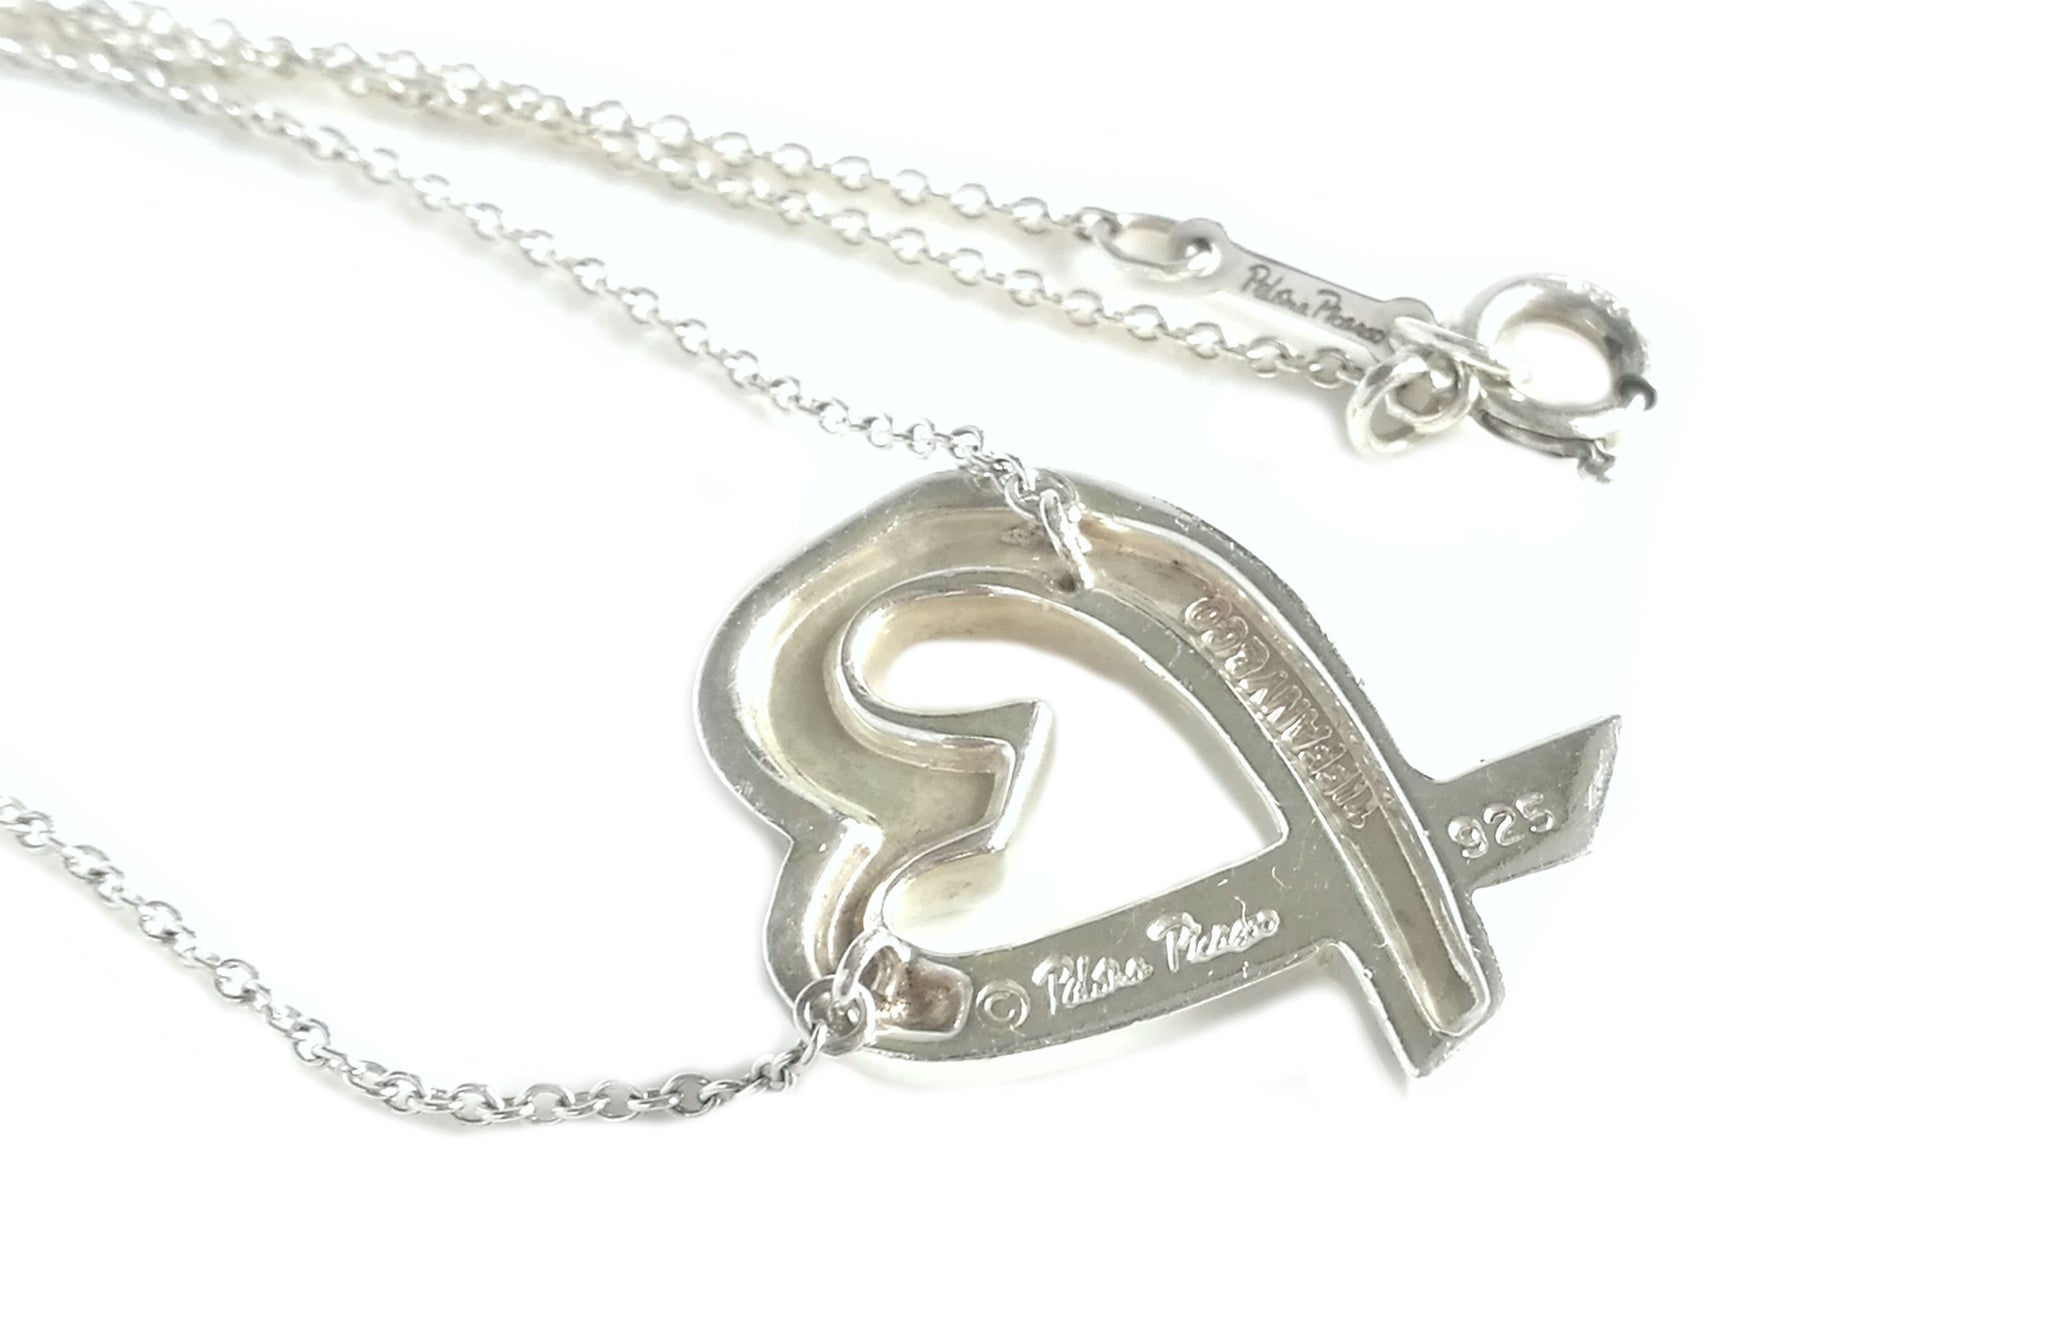 a9d5373a7 Tiffany & Co. Paloma Picasso Sterling Silver Loving Heart 18 inch Necklace